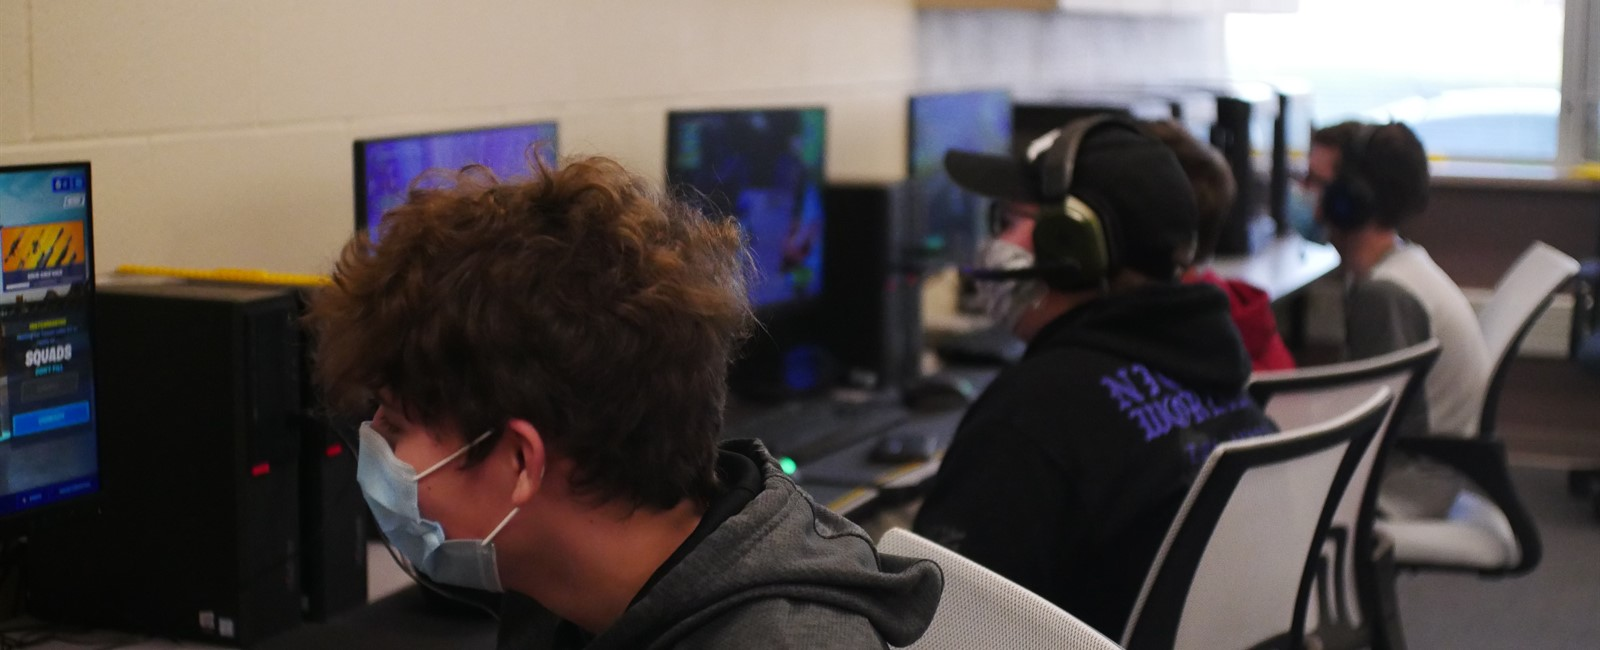 Four students playing esports